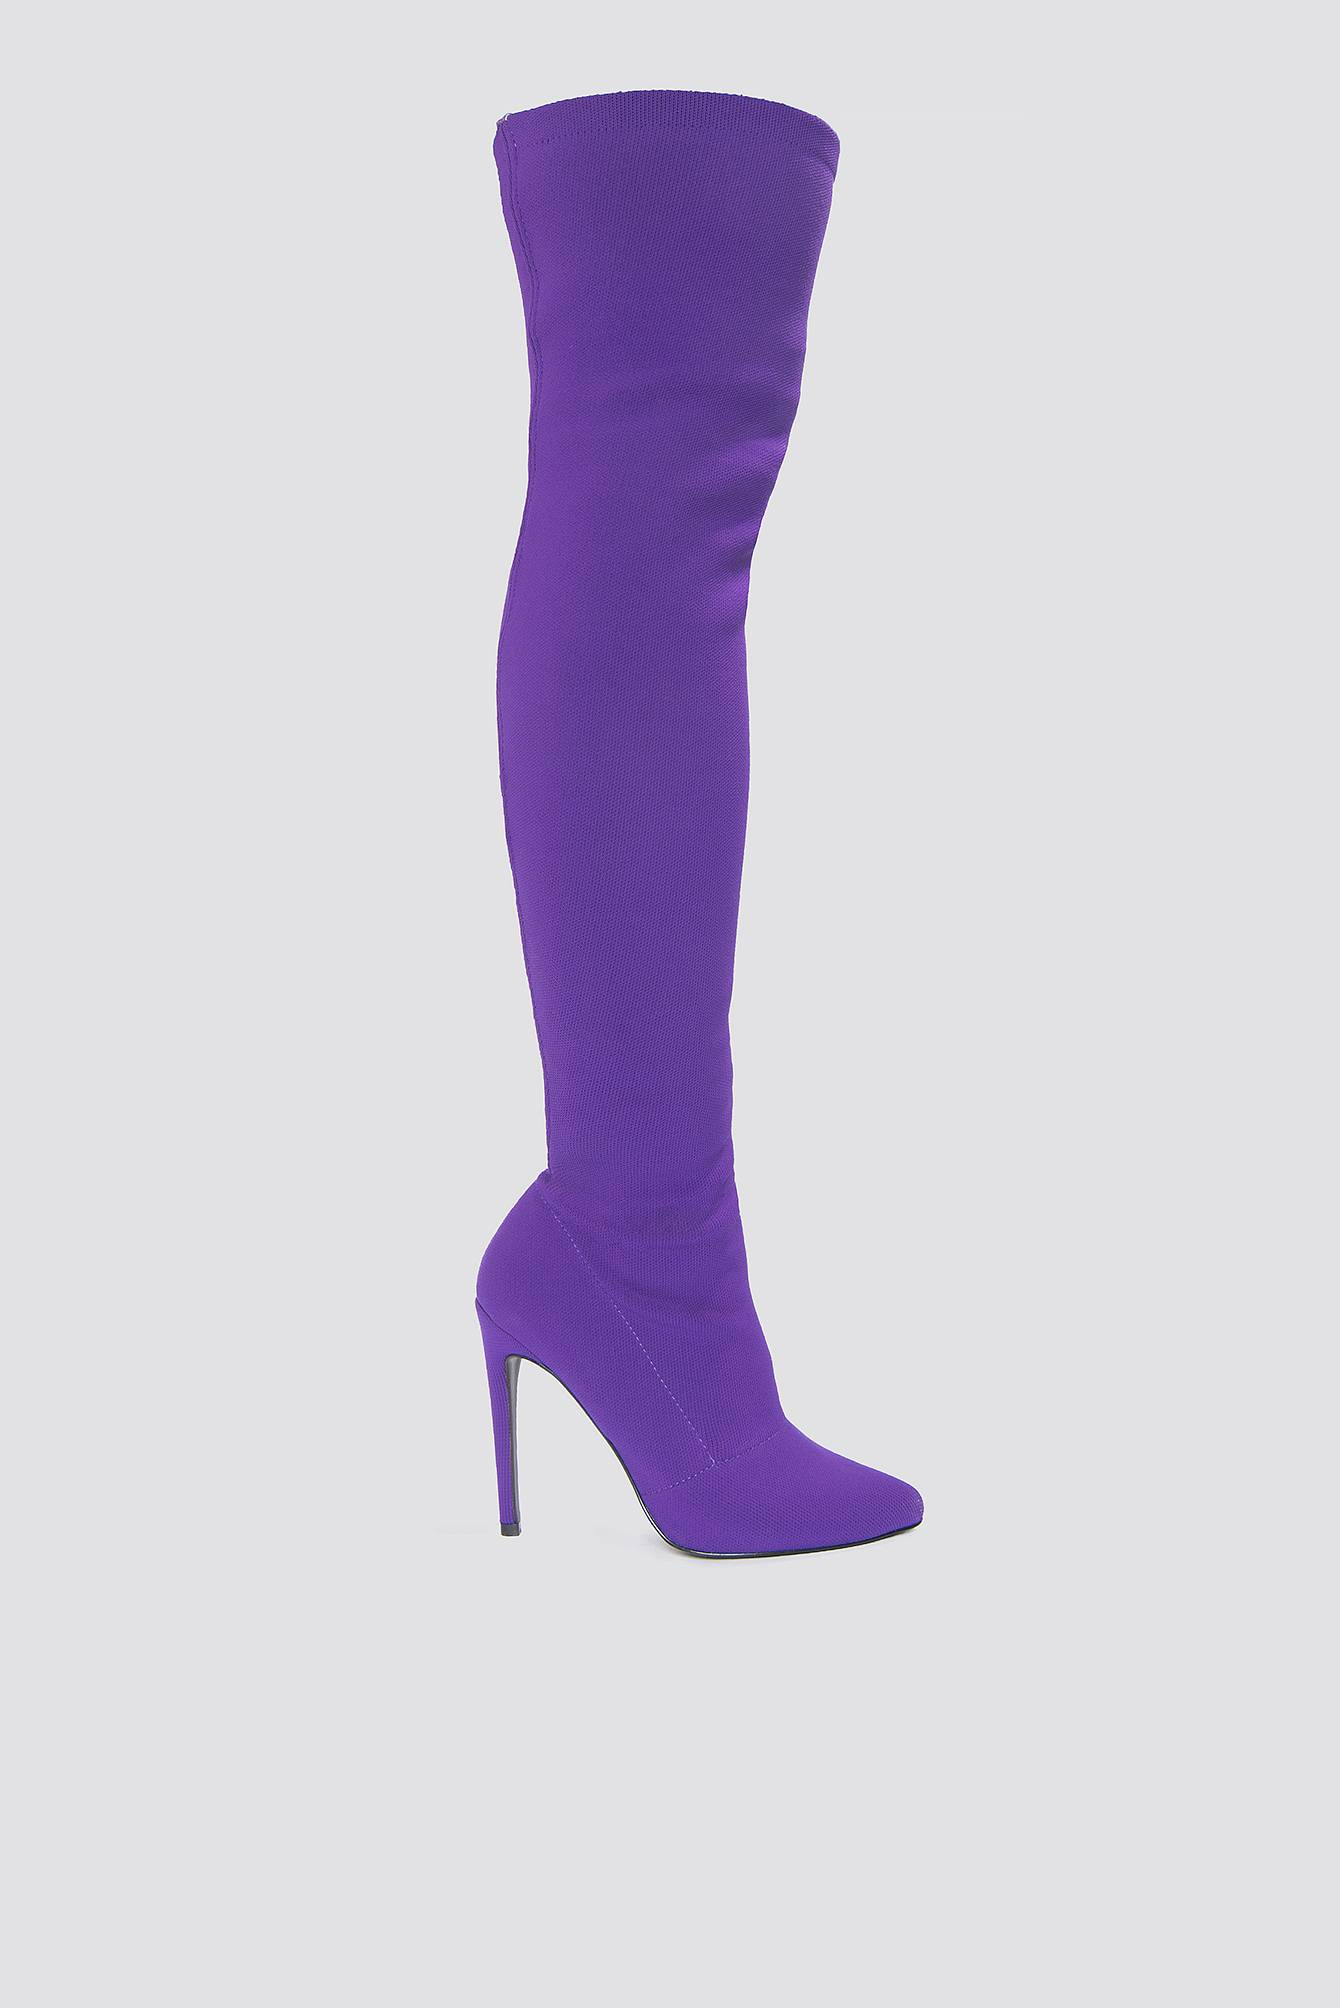 Steve Madden Slammin Boot - Purple